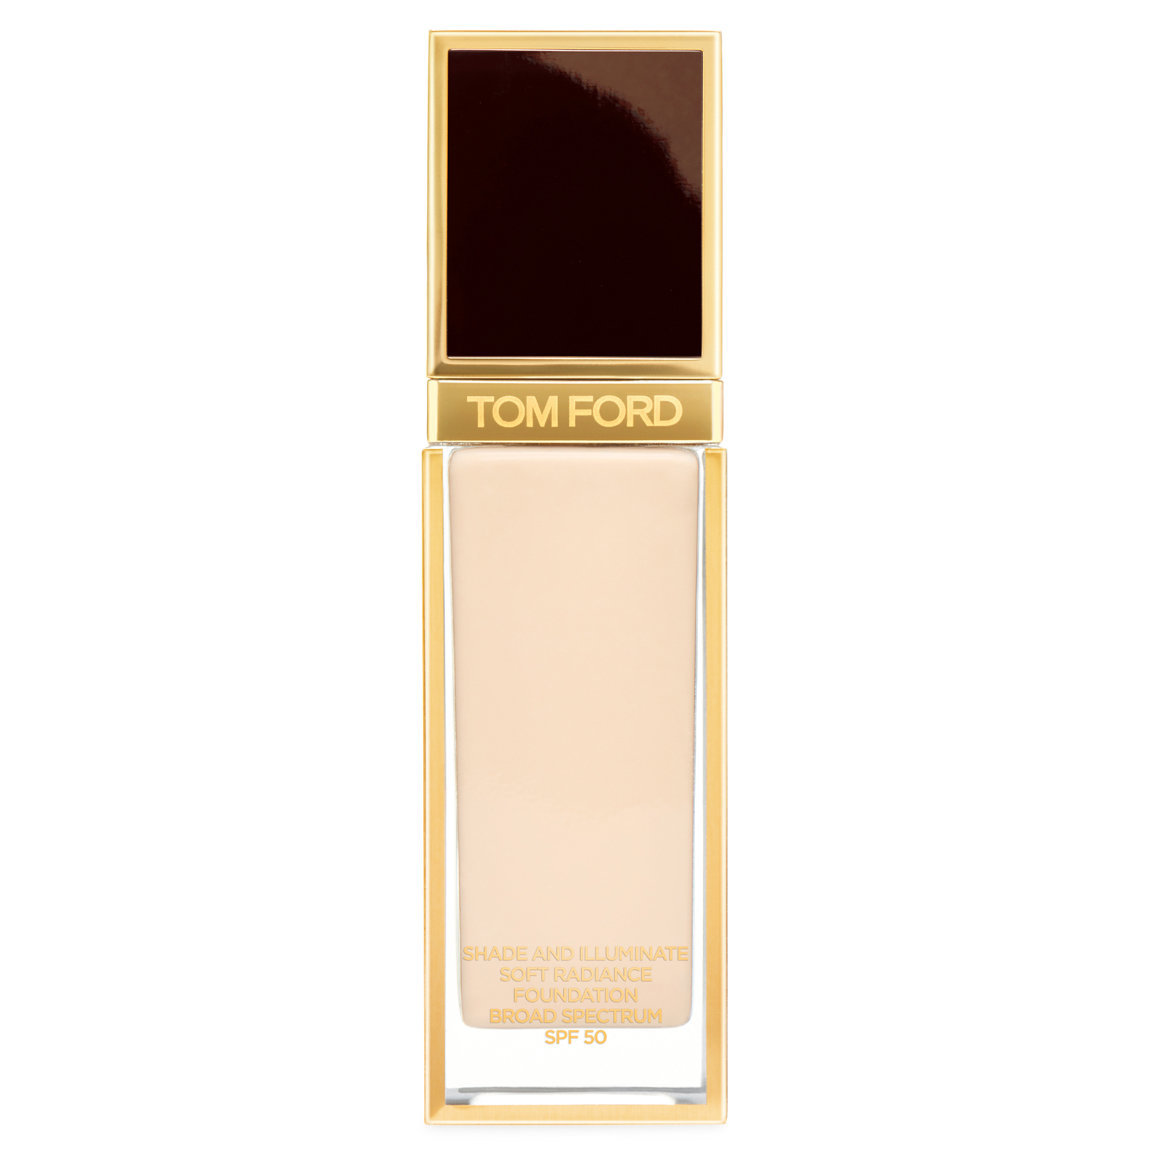 TOM FORD Shade & Illuminate Soft Radiance Foundation SPF 50 0.0 Pearl